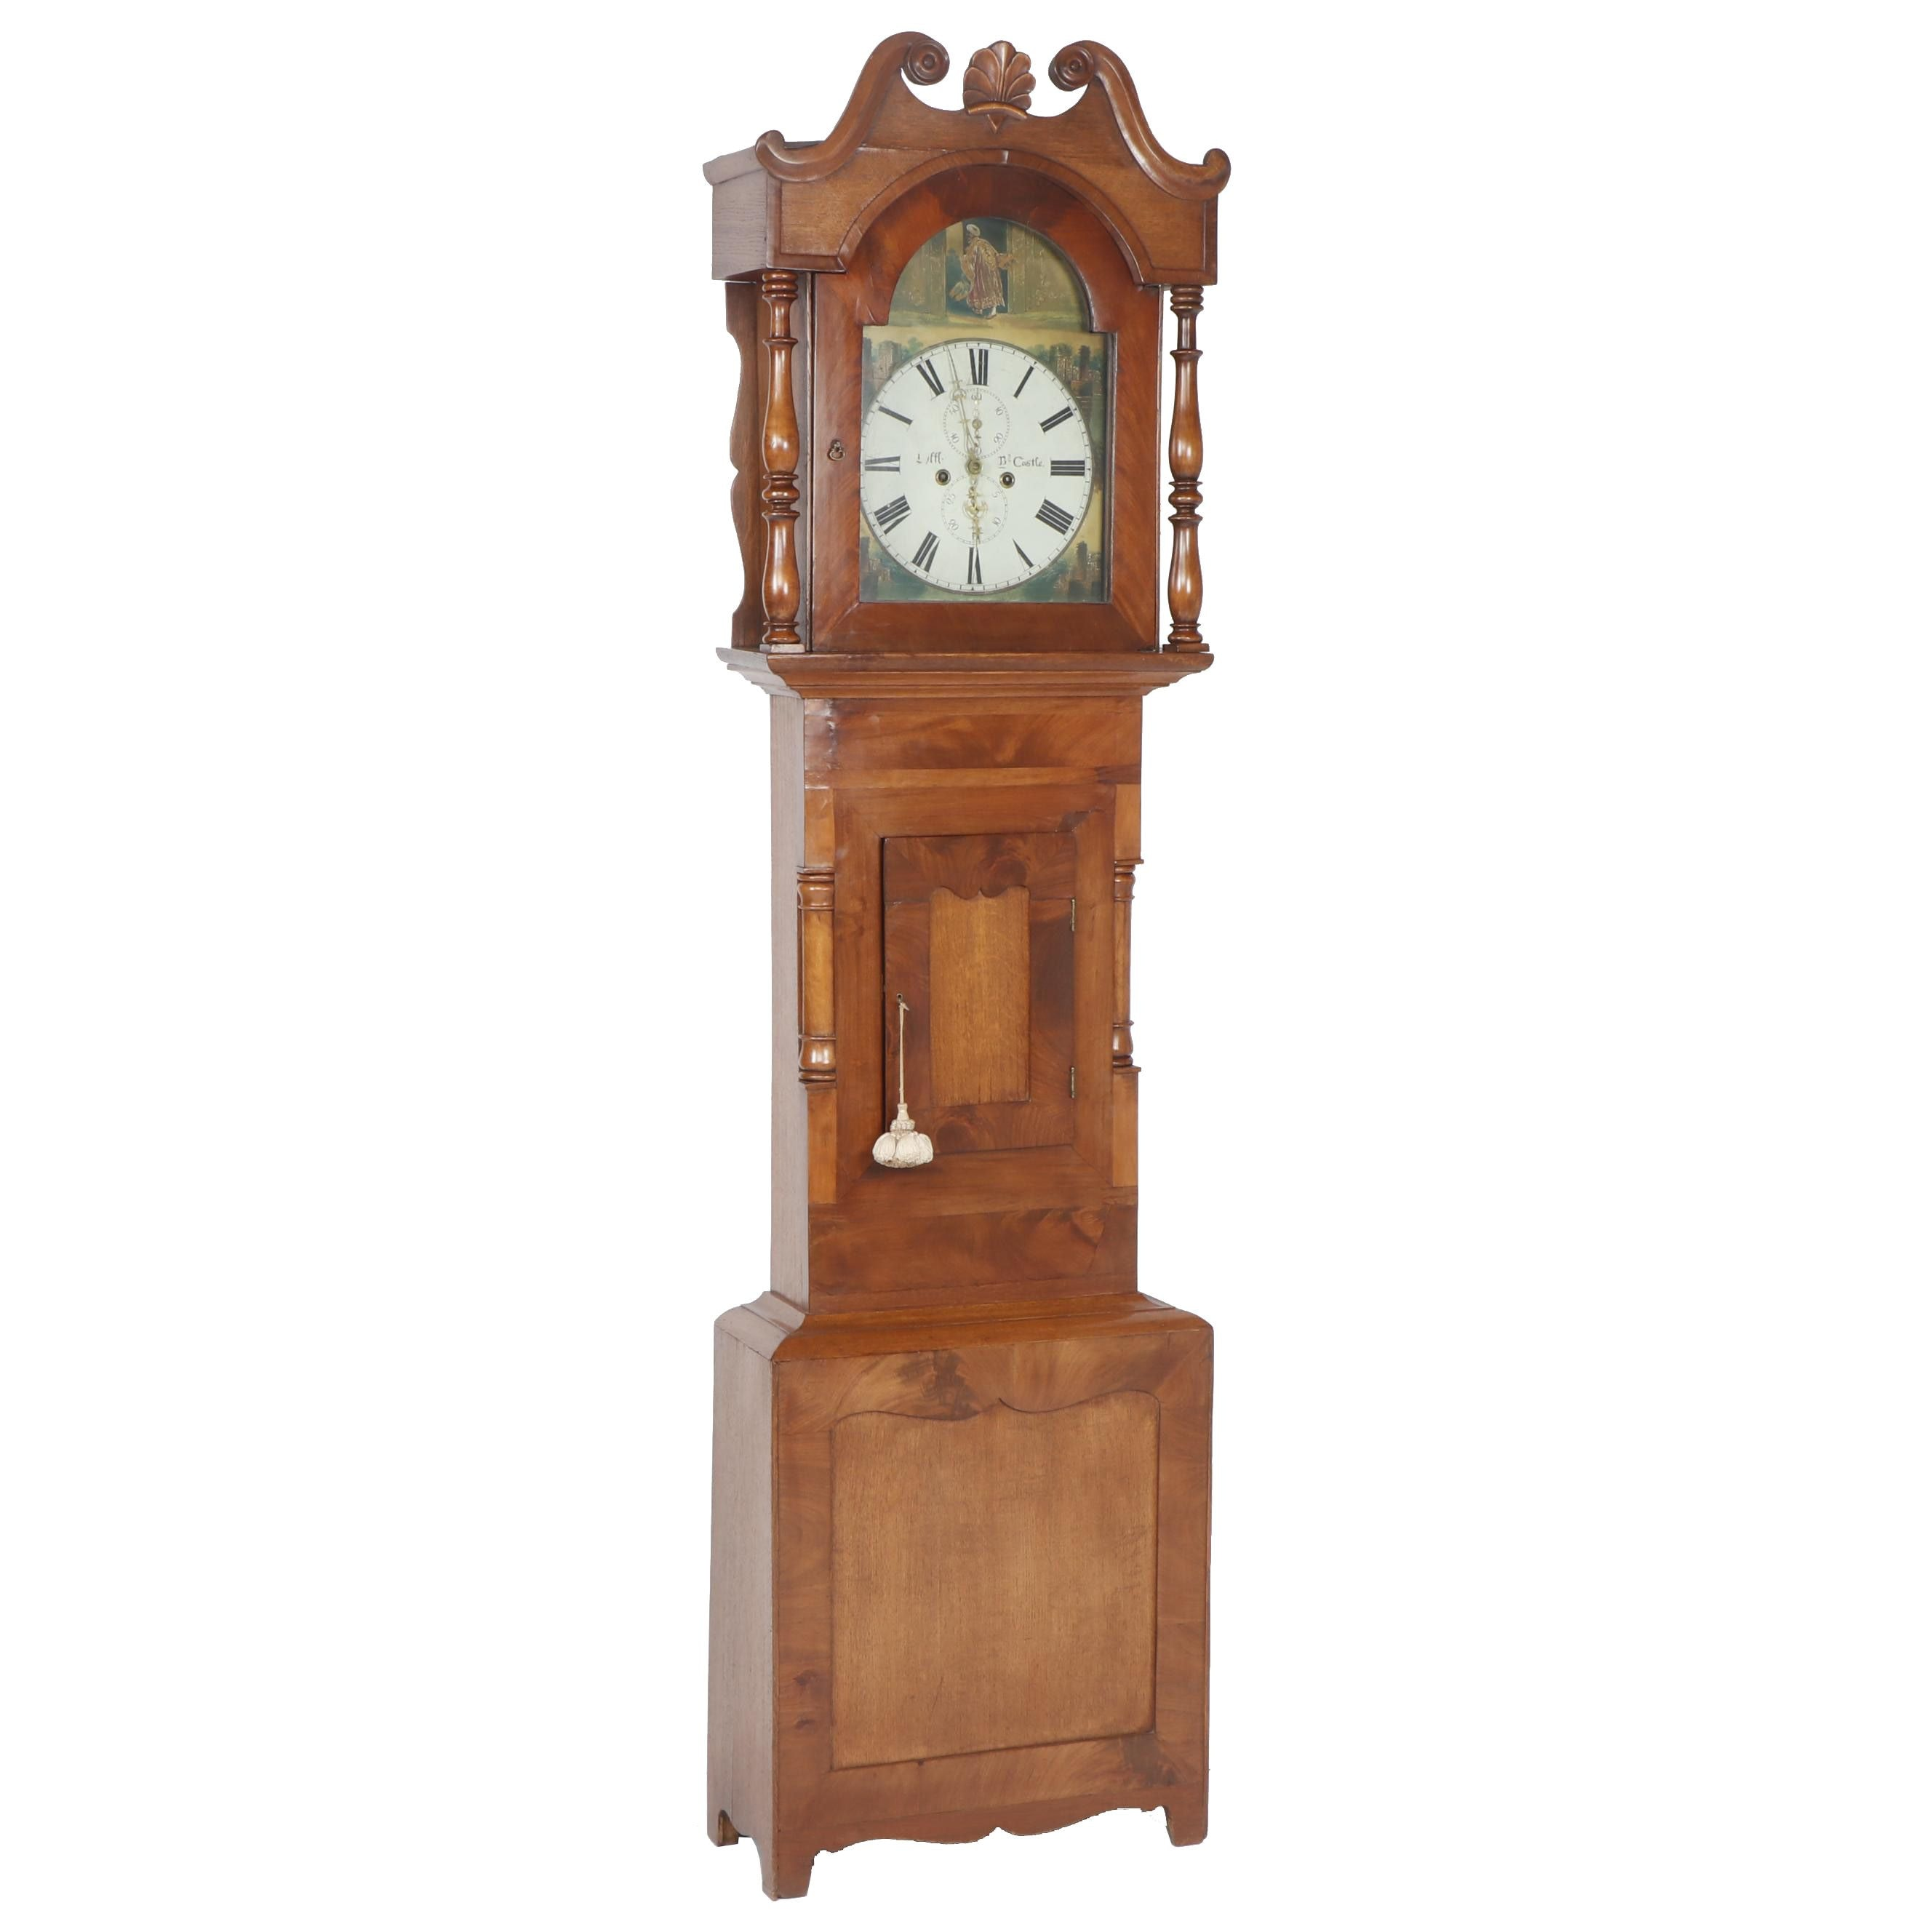 George III Mahogany Longcase Clock with Hand-Painted Face, Early 19th C.